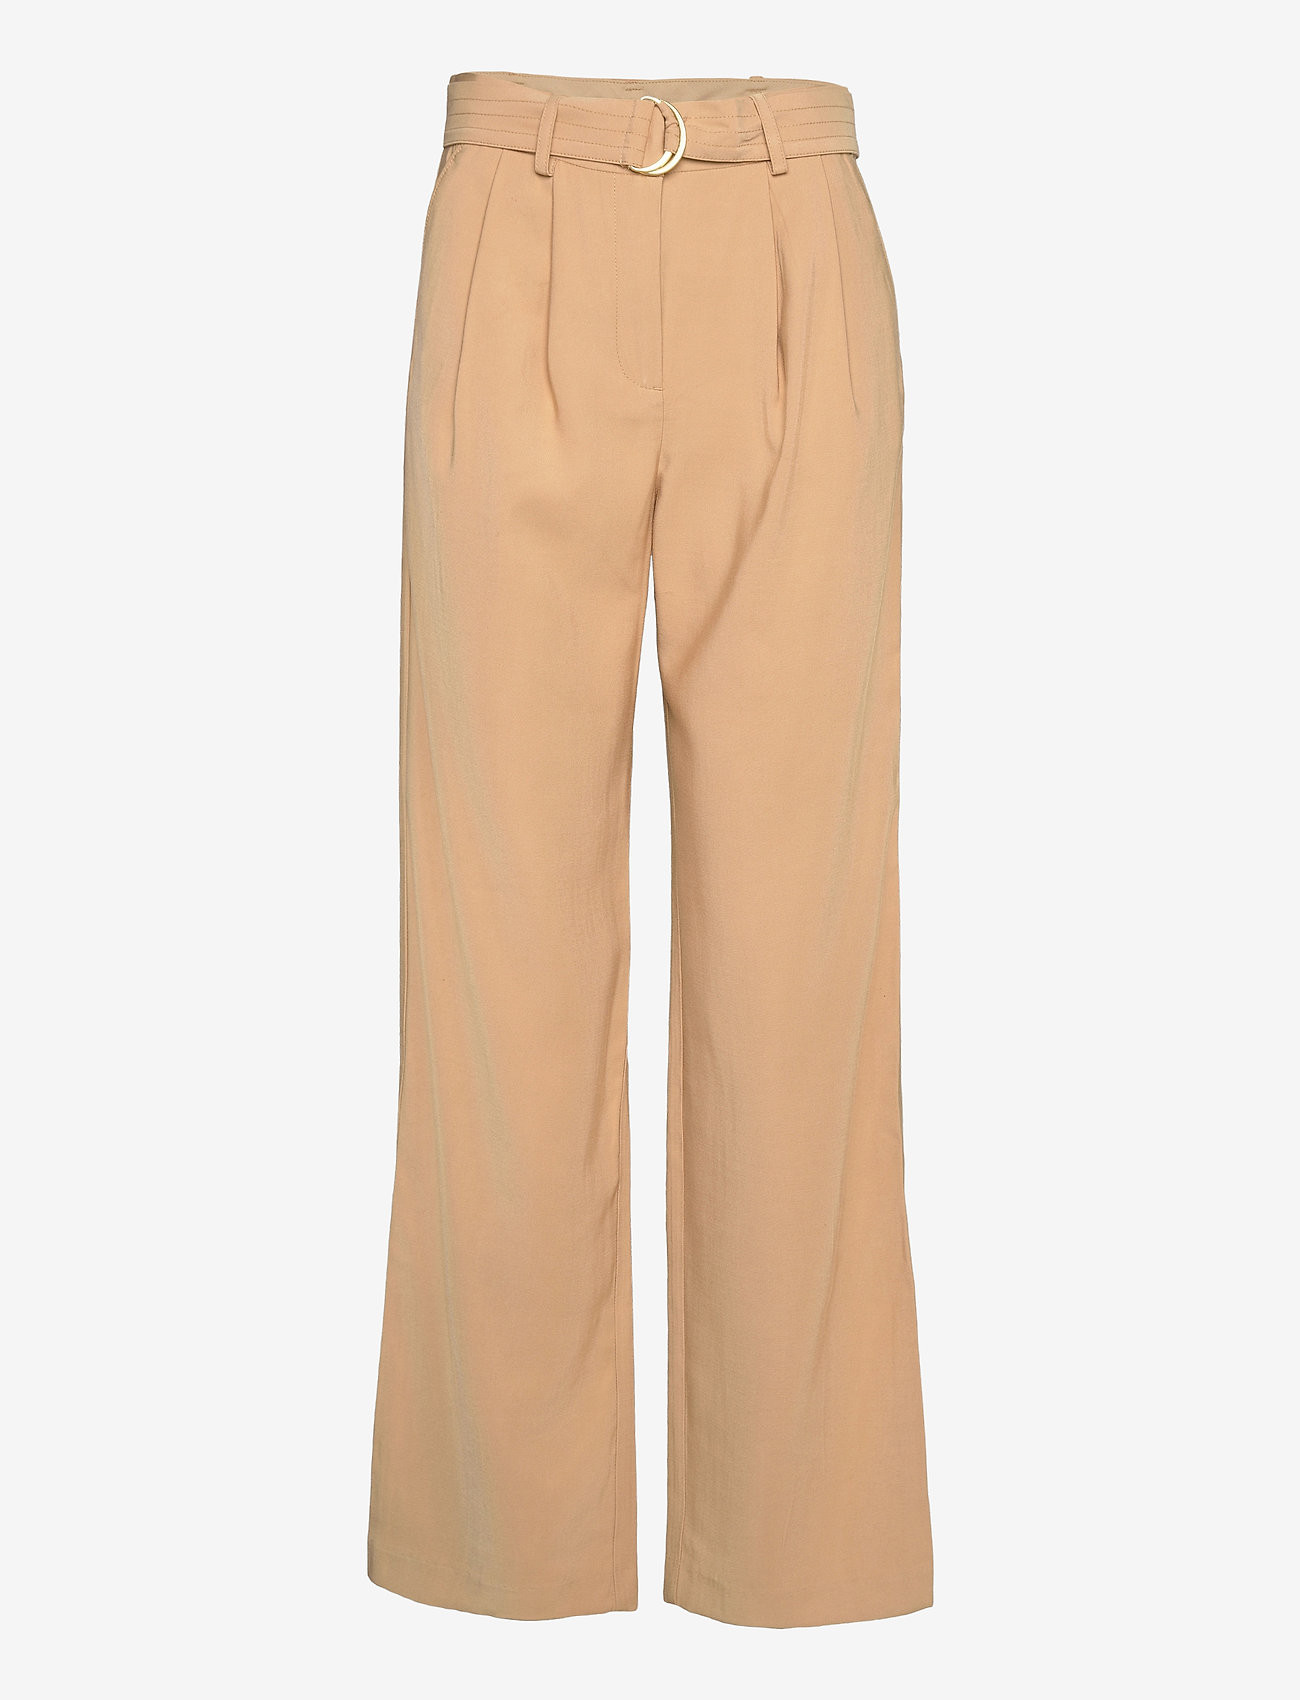 Capellasz Pants (Warm Sand) (52.46 €) - Saint Tropez cy7eY